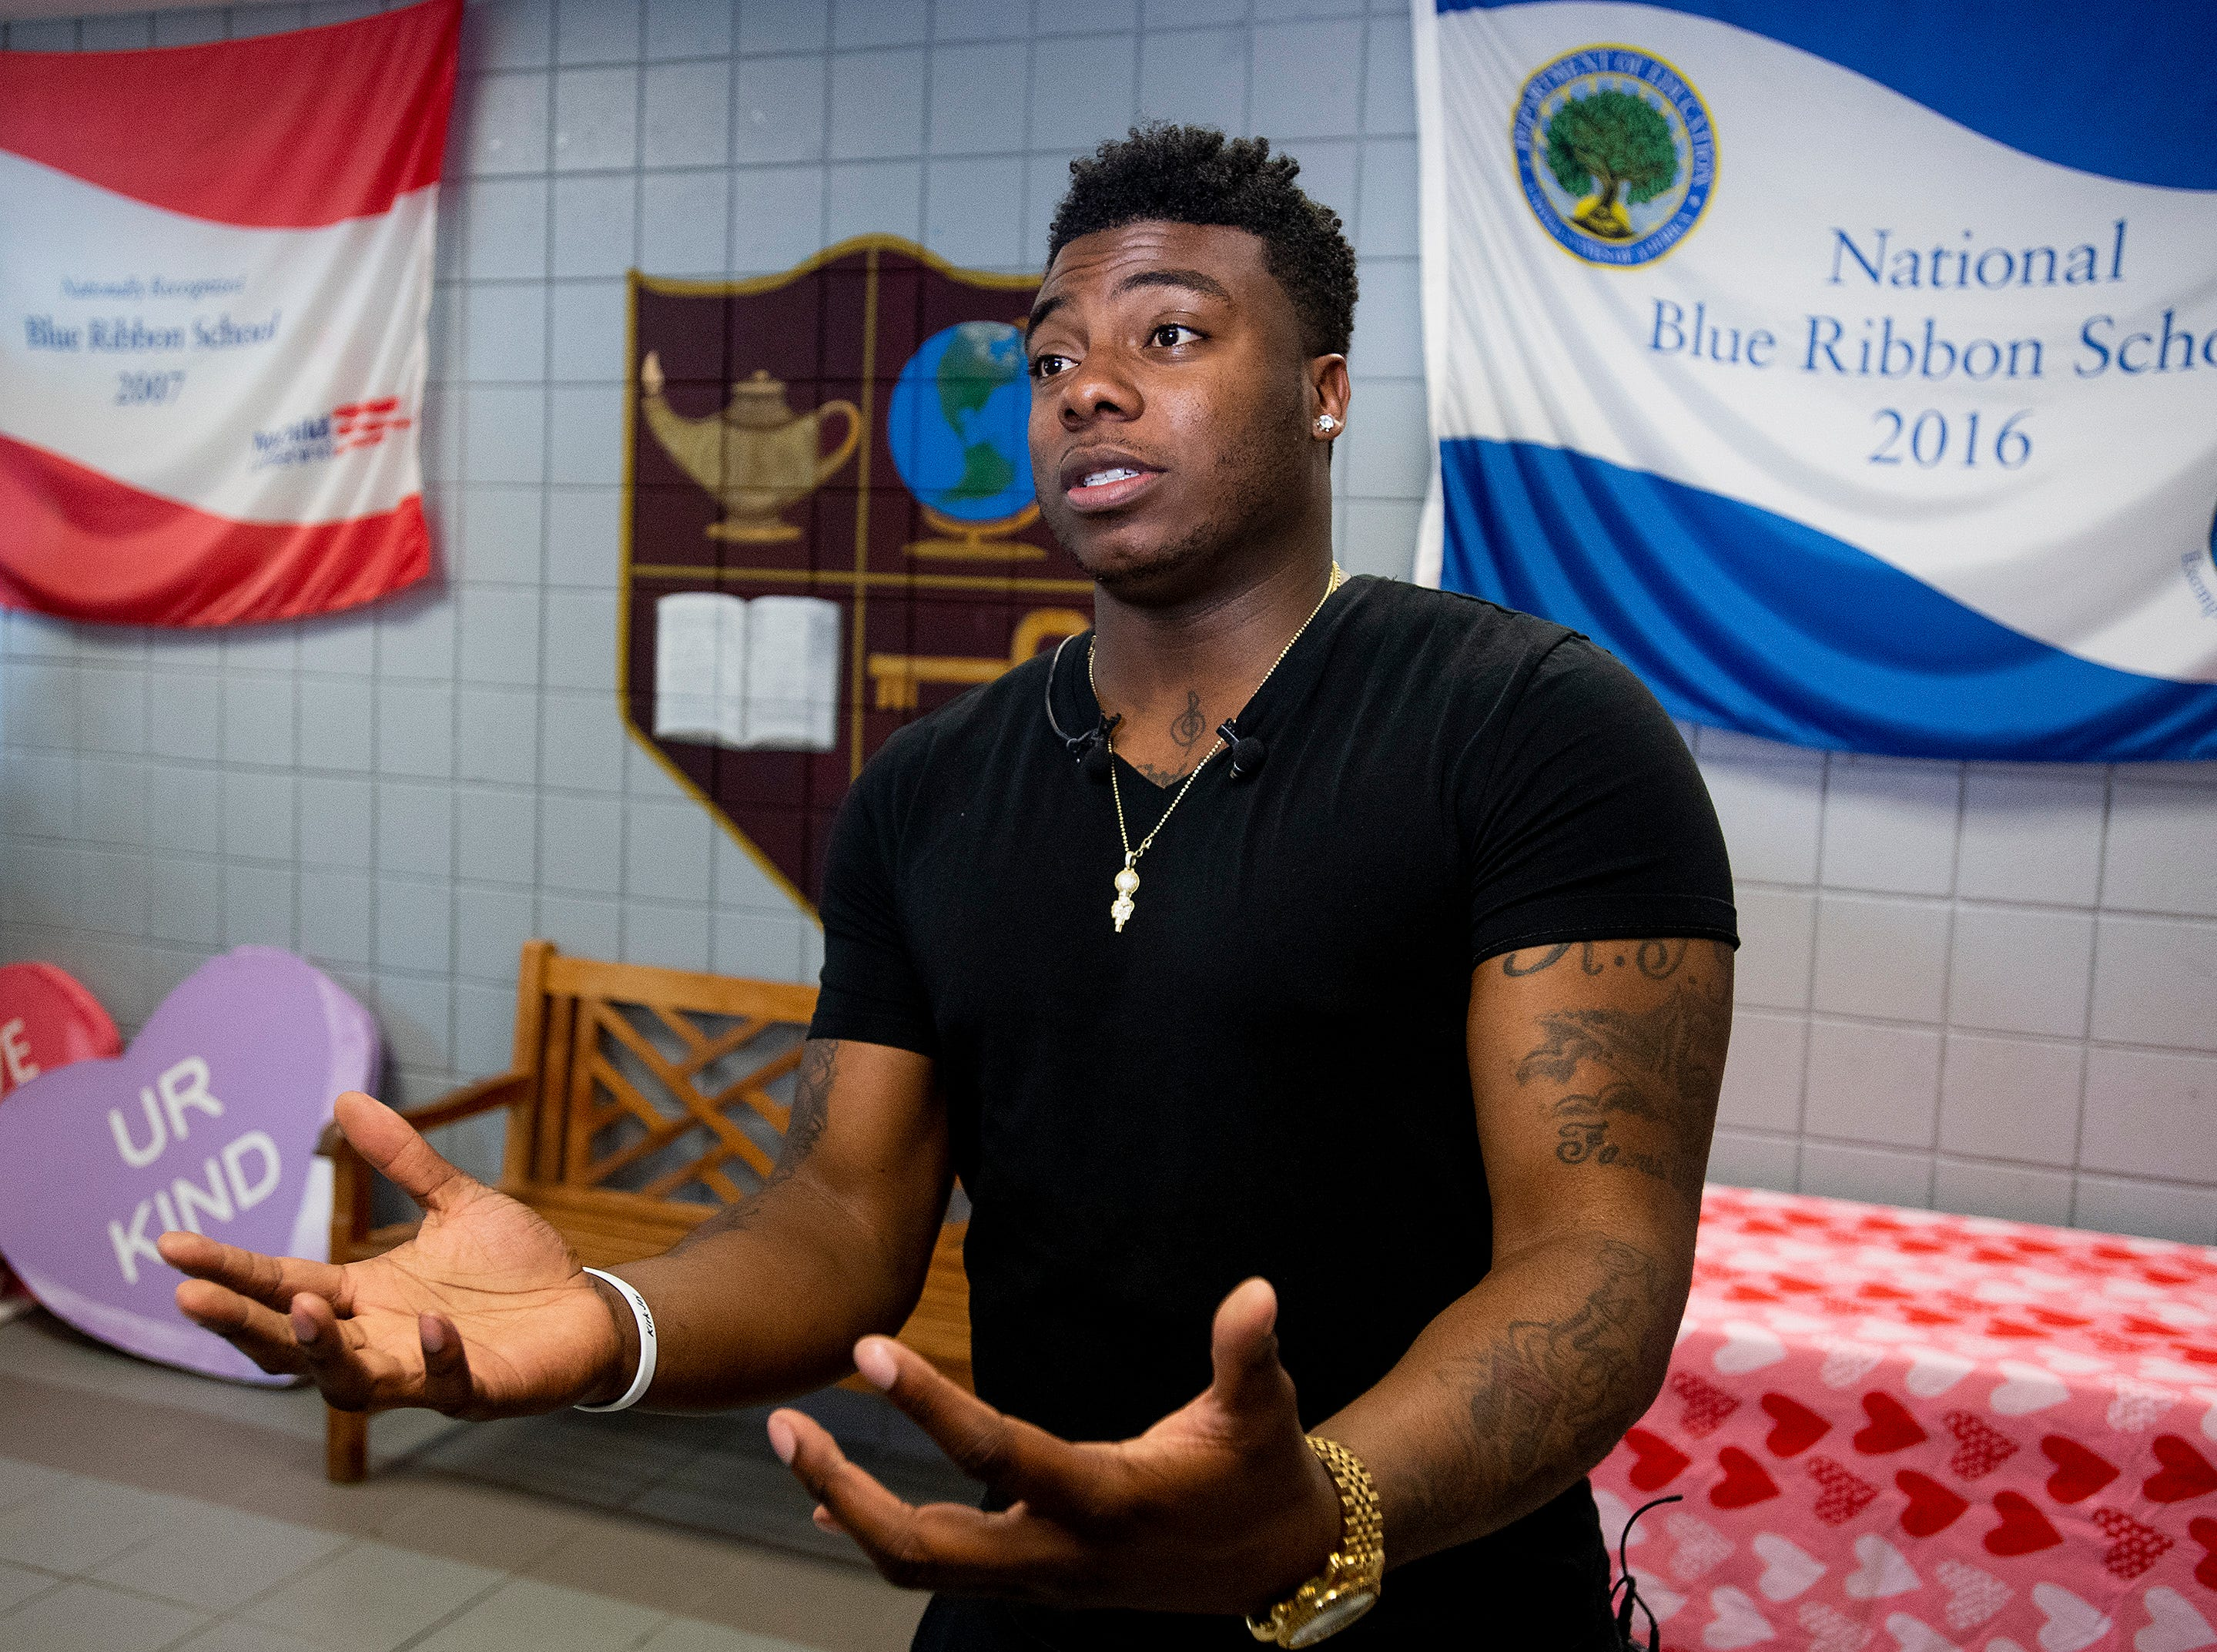 Kirk Jay, who finished third on The Voice, visits Forest Avenue School in Montgomery, Ala., on Tuesday February 5, 2019.